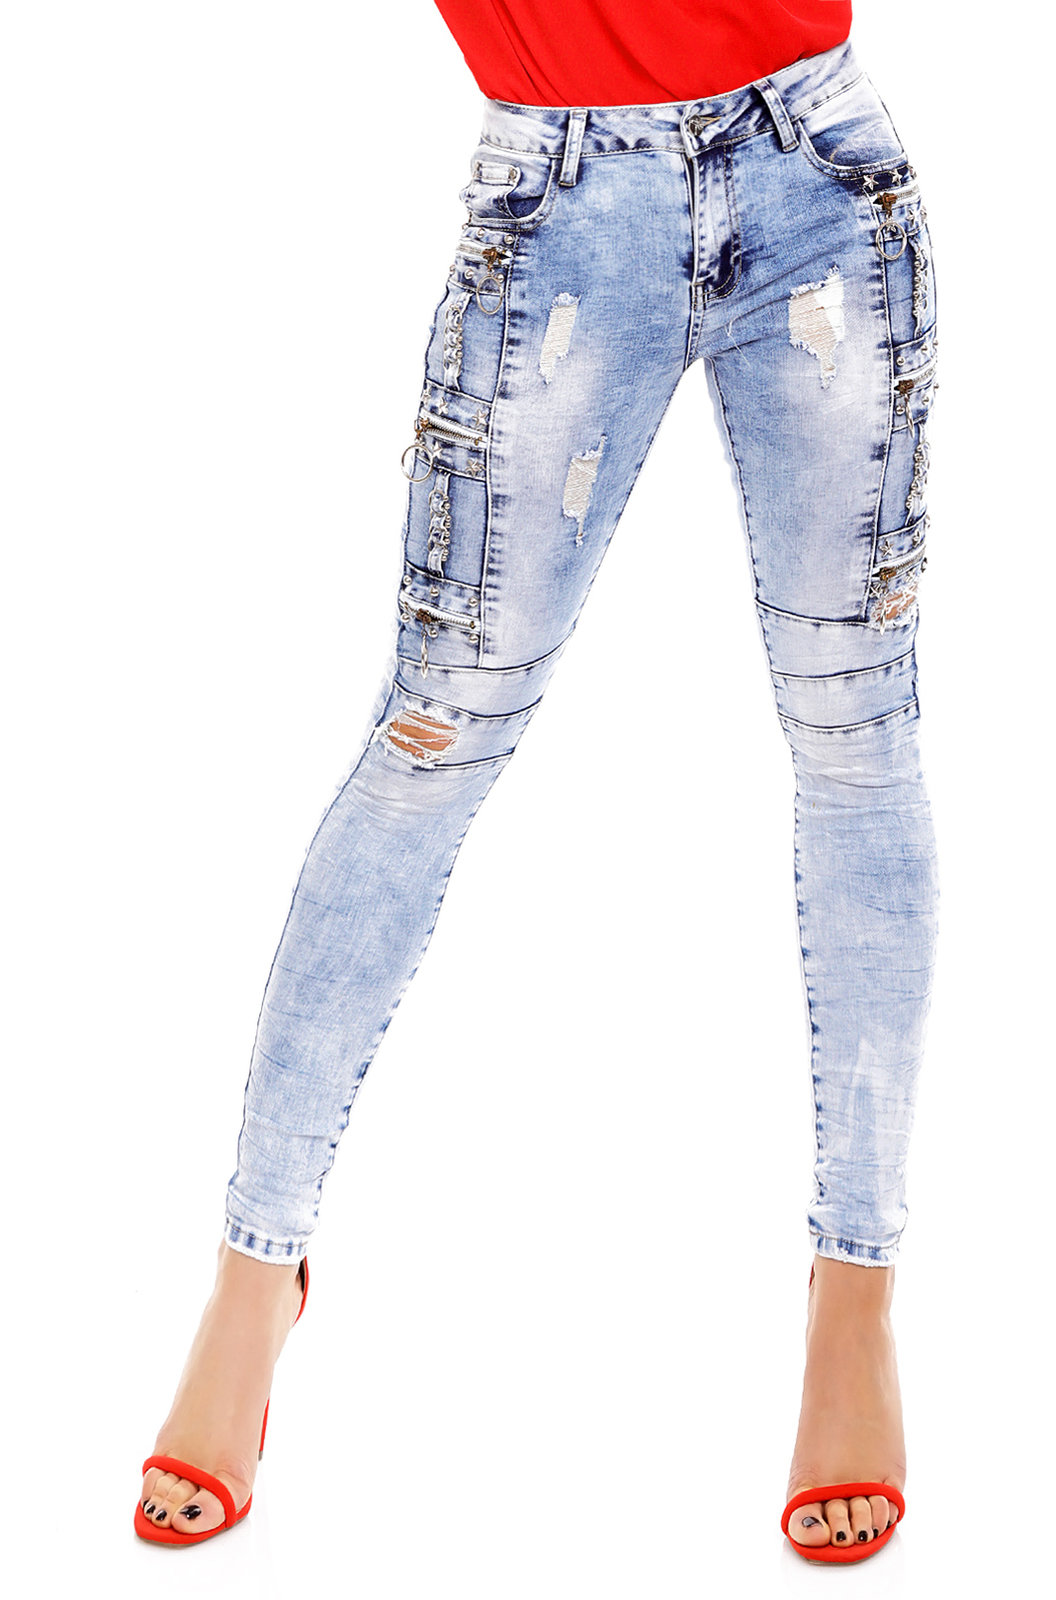 Original Damen Skinny Destroyed Jeans Hose Röhrenjeans Ripped Look E1965 blau